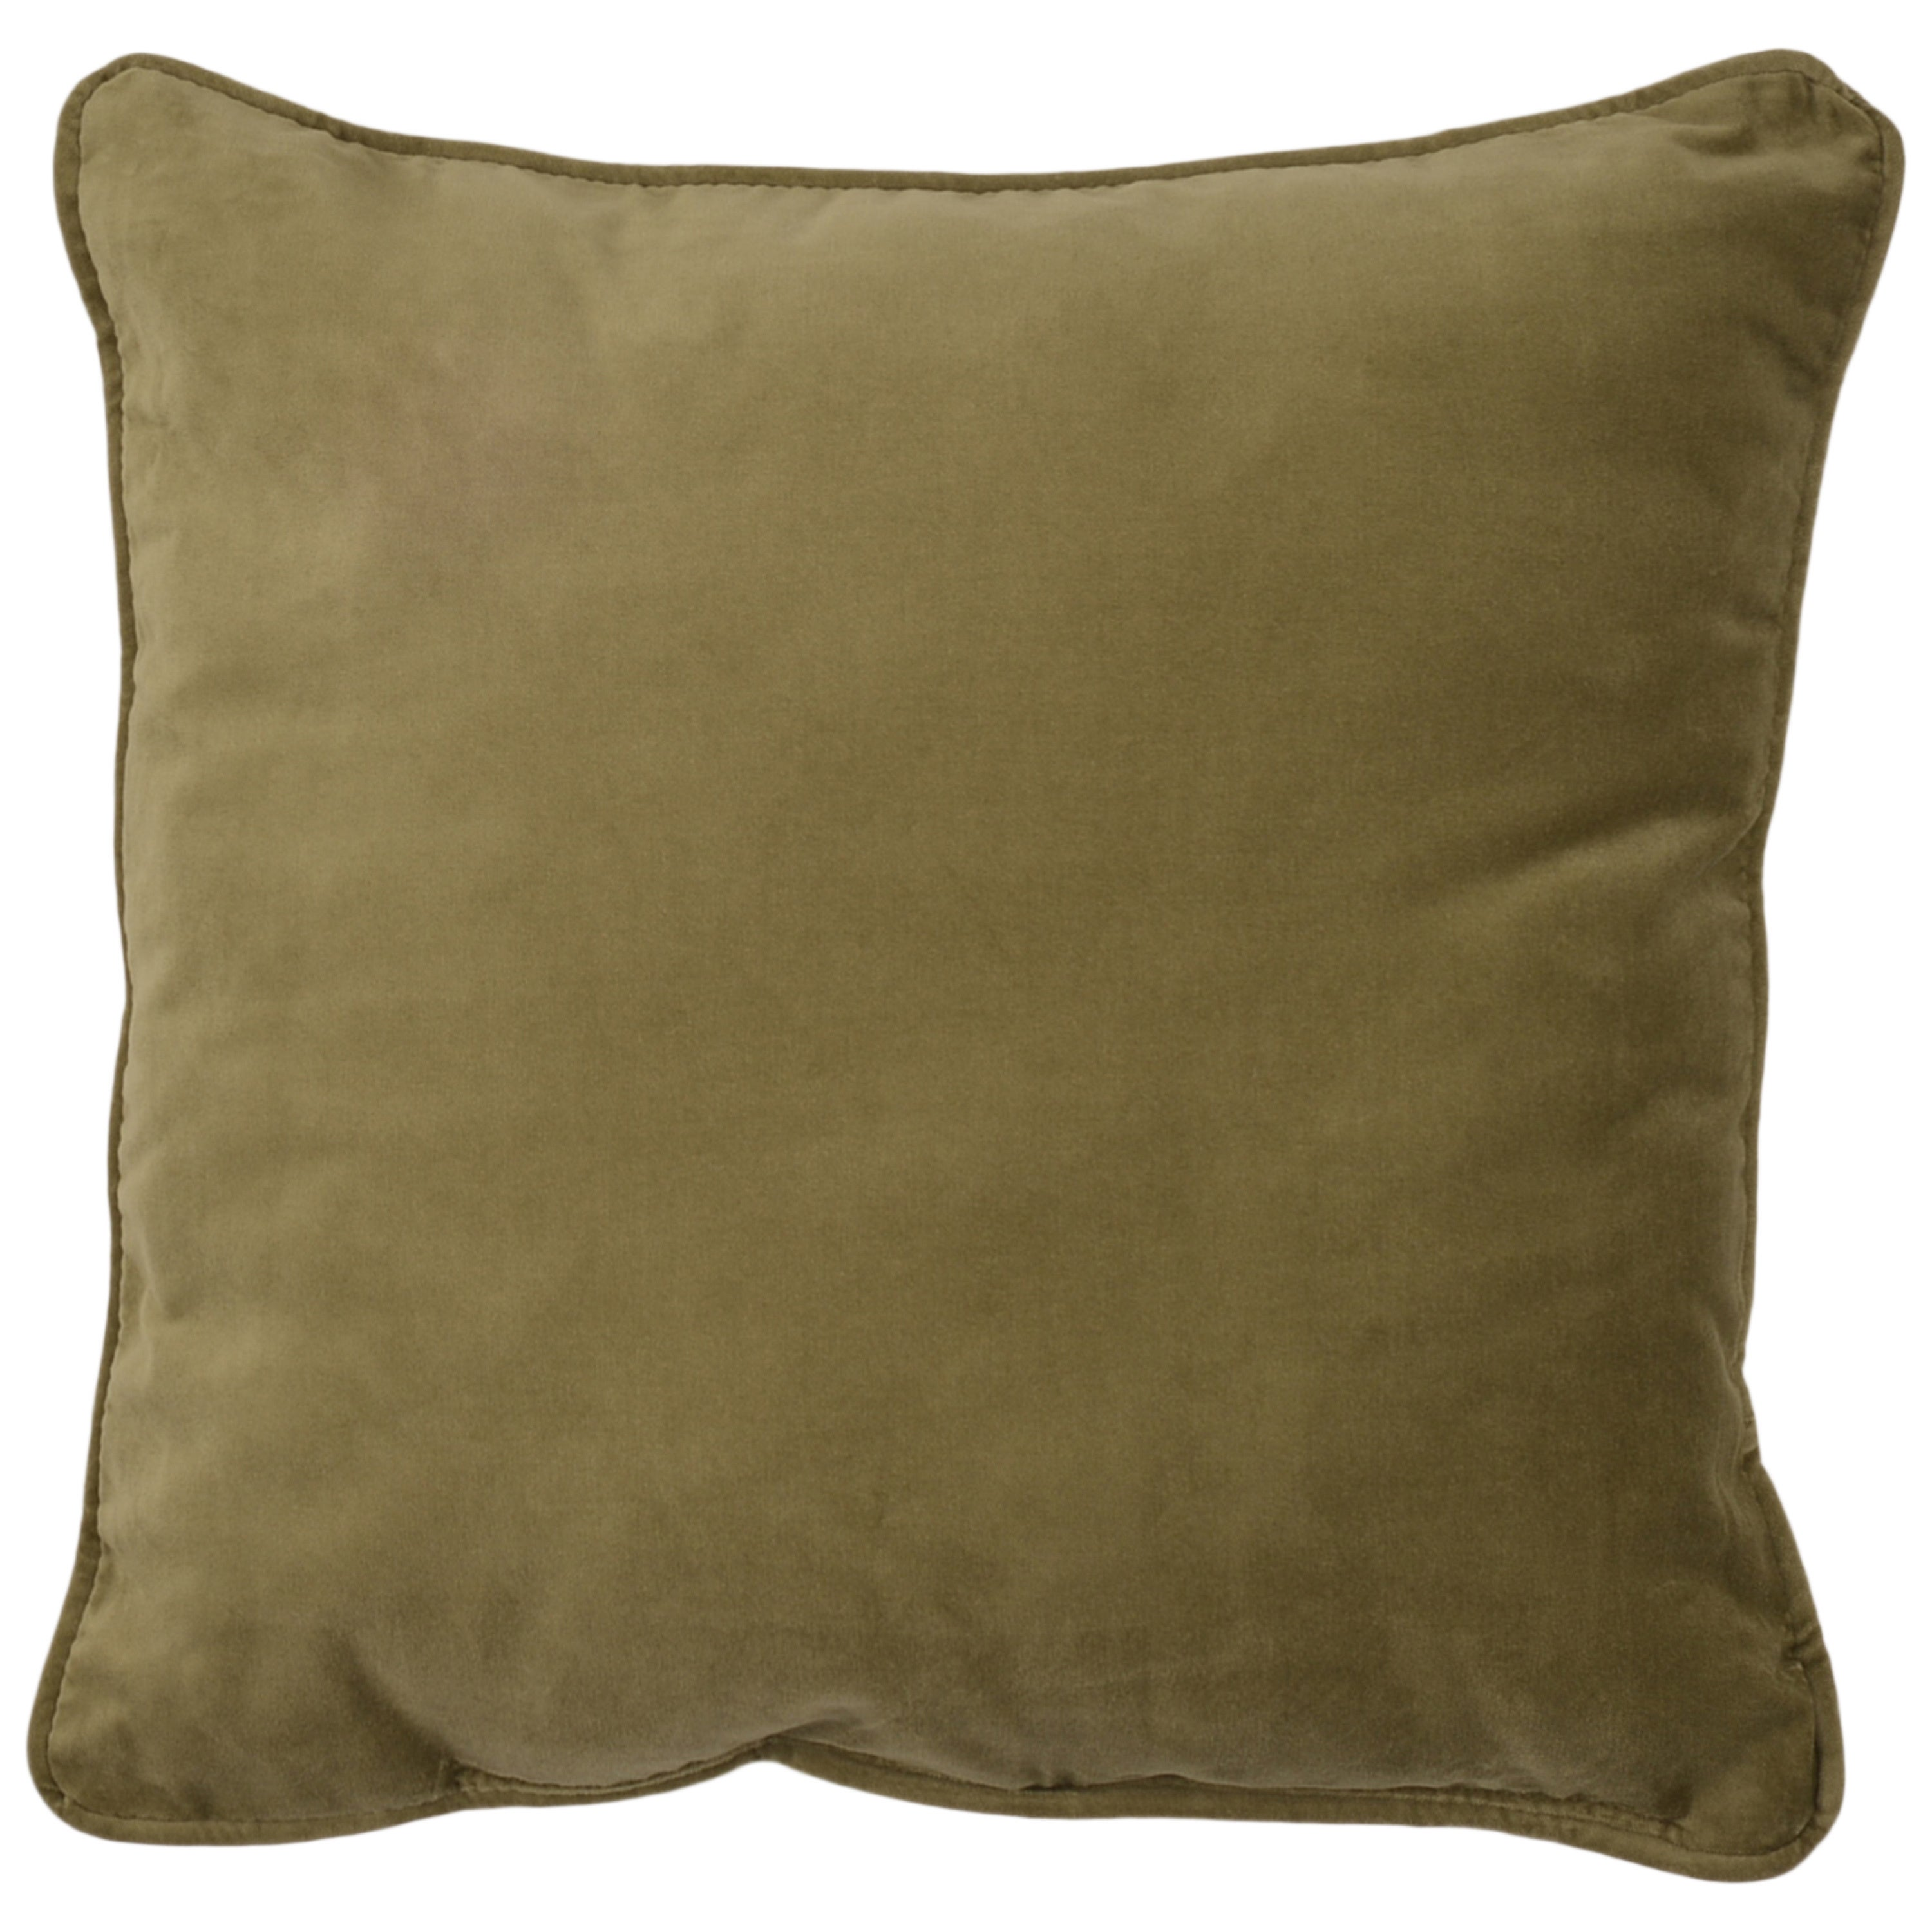 cushions oversized decorative pillows decor things choosing best wisely couch